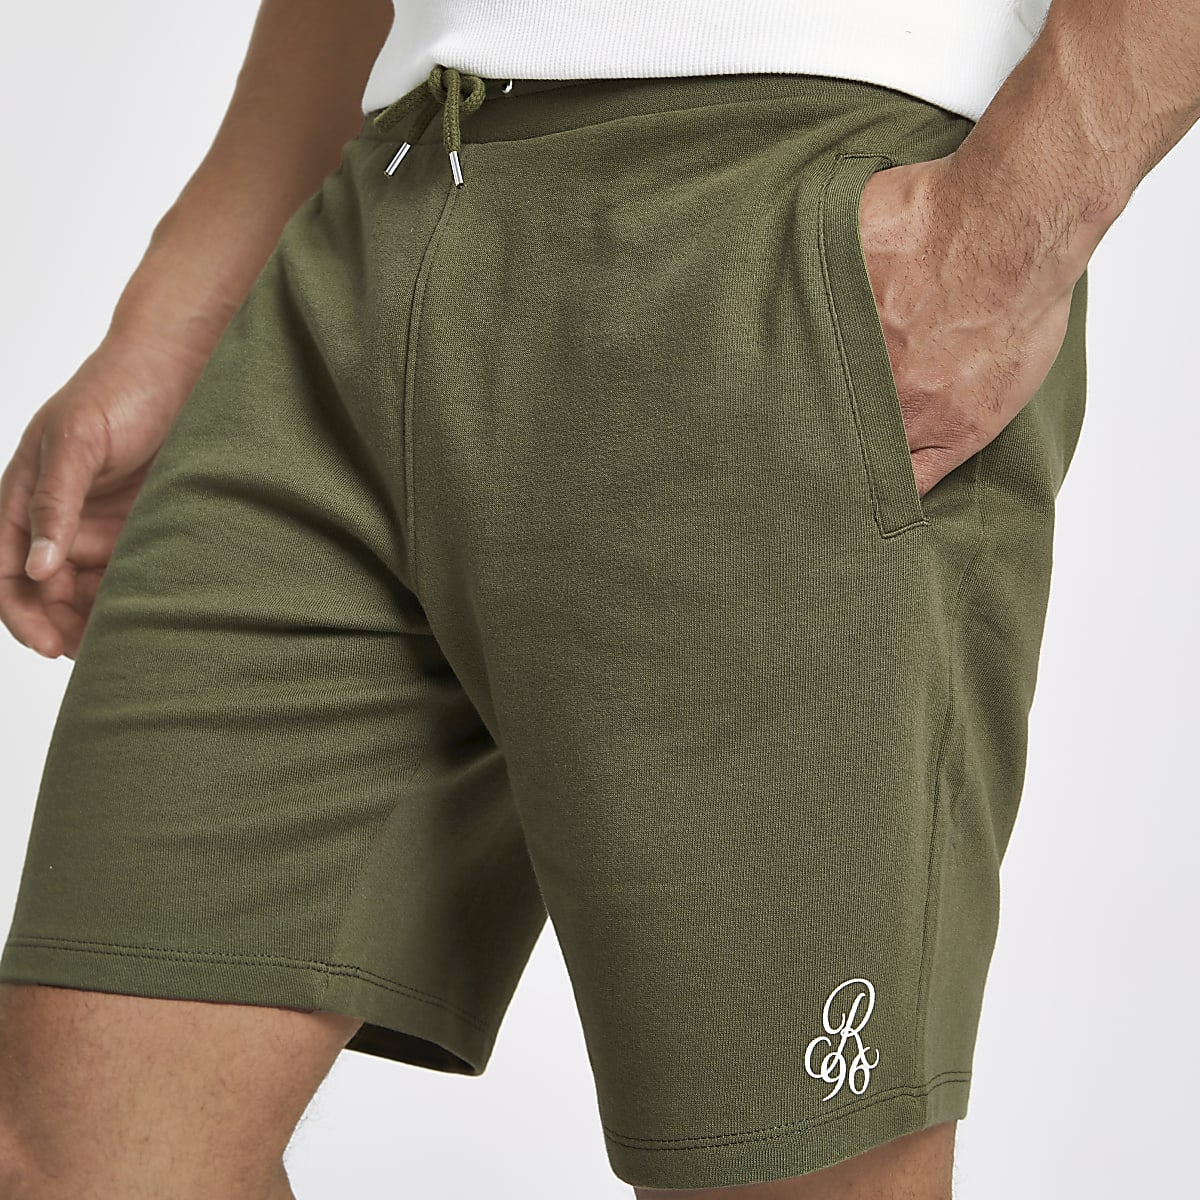 Khaki green R96 embroidered slim fit shorts